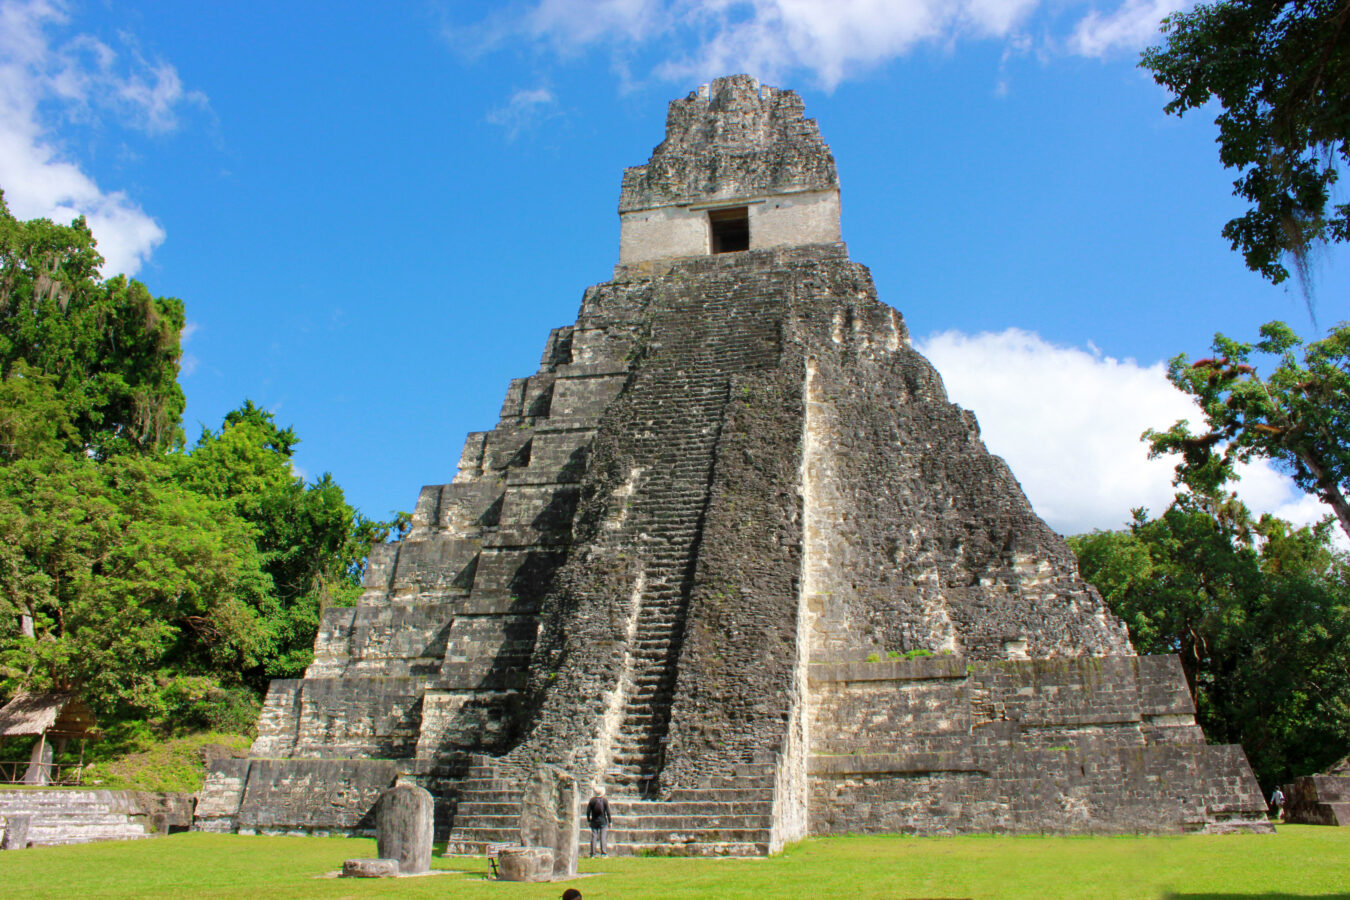 Tikal - 12 Surprising Things You Might Not Know About Tikal Maya Ruins